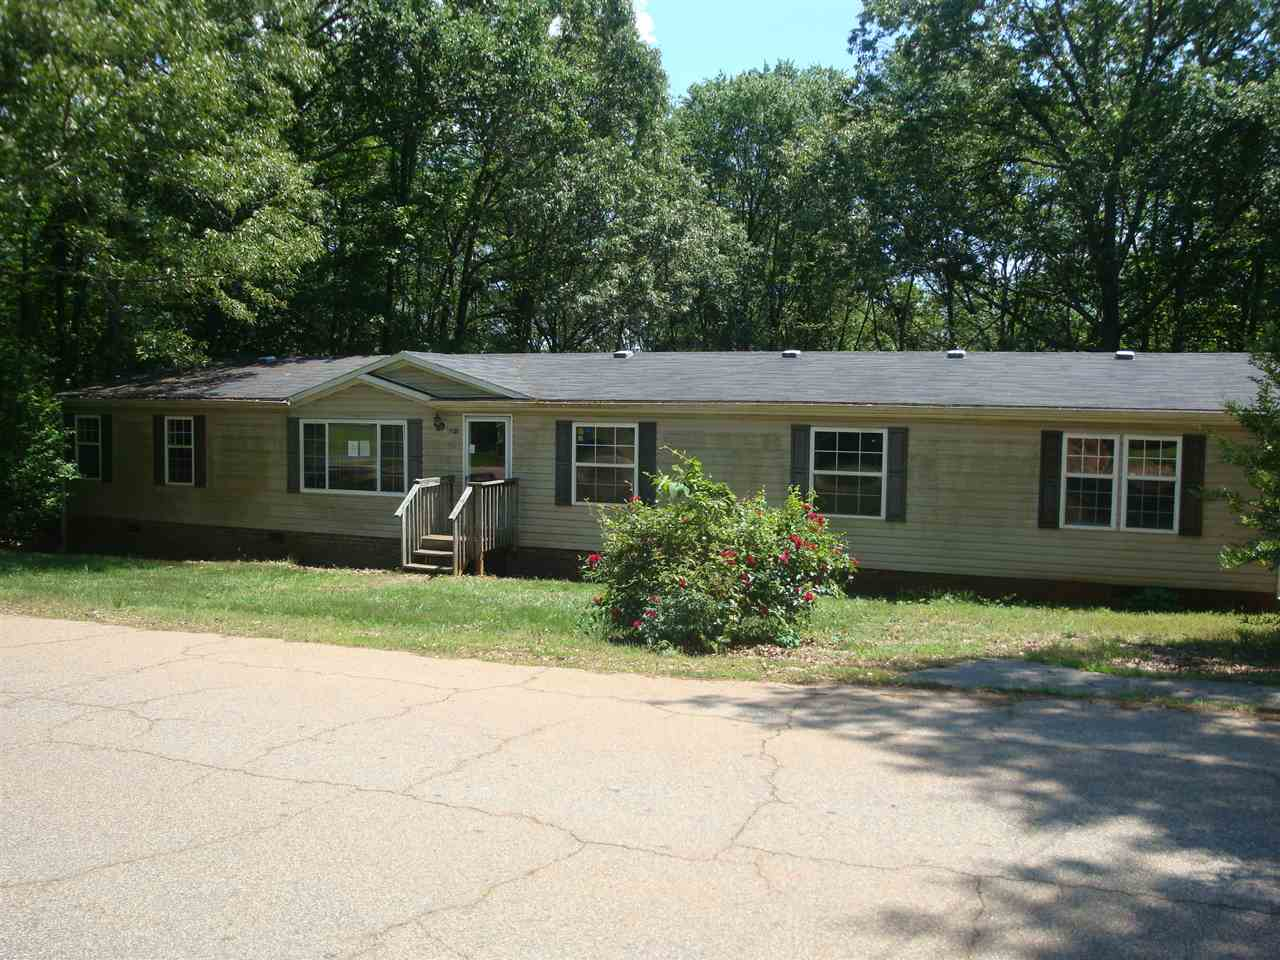 Rental Homes for Rent, ListingId:33476578, location: 2021 Mullinax Dr Anderson 29624